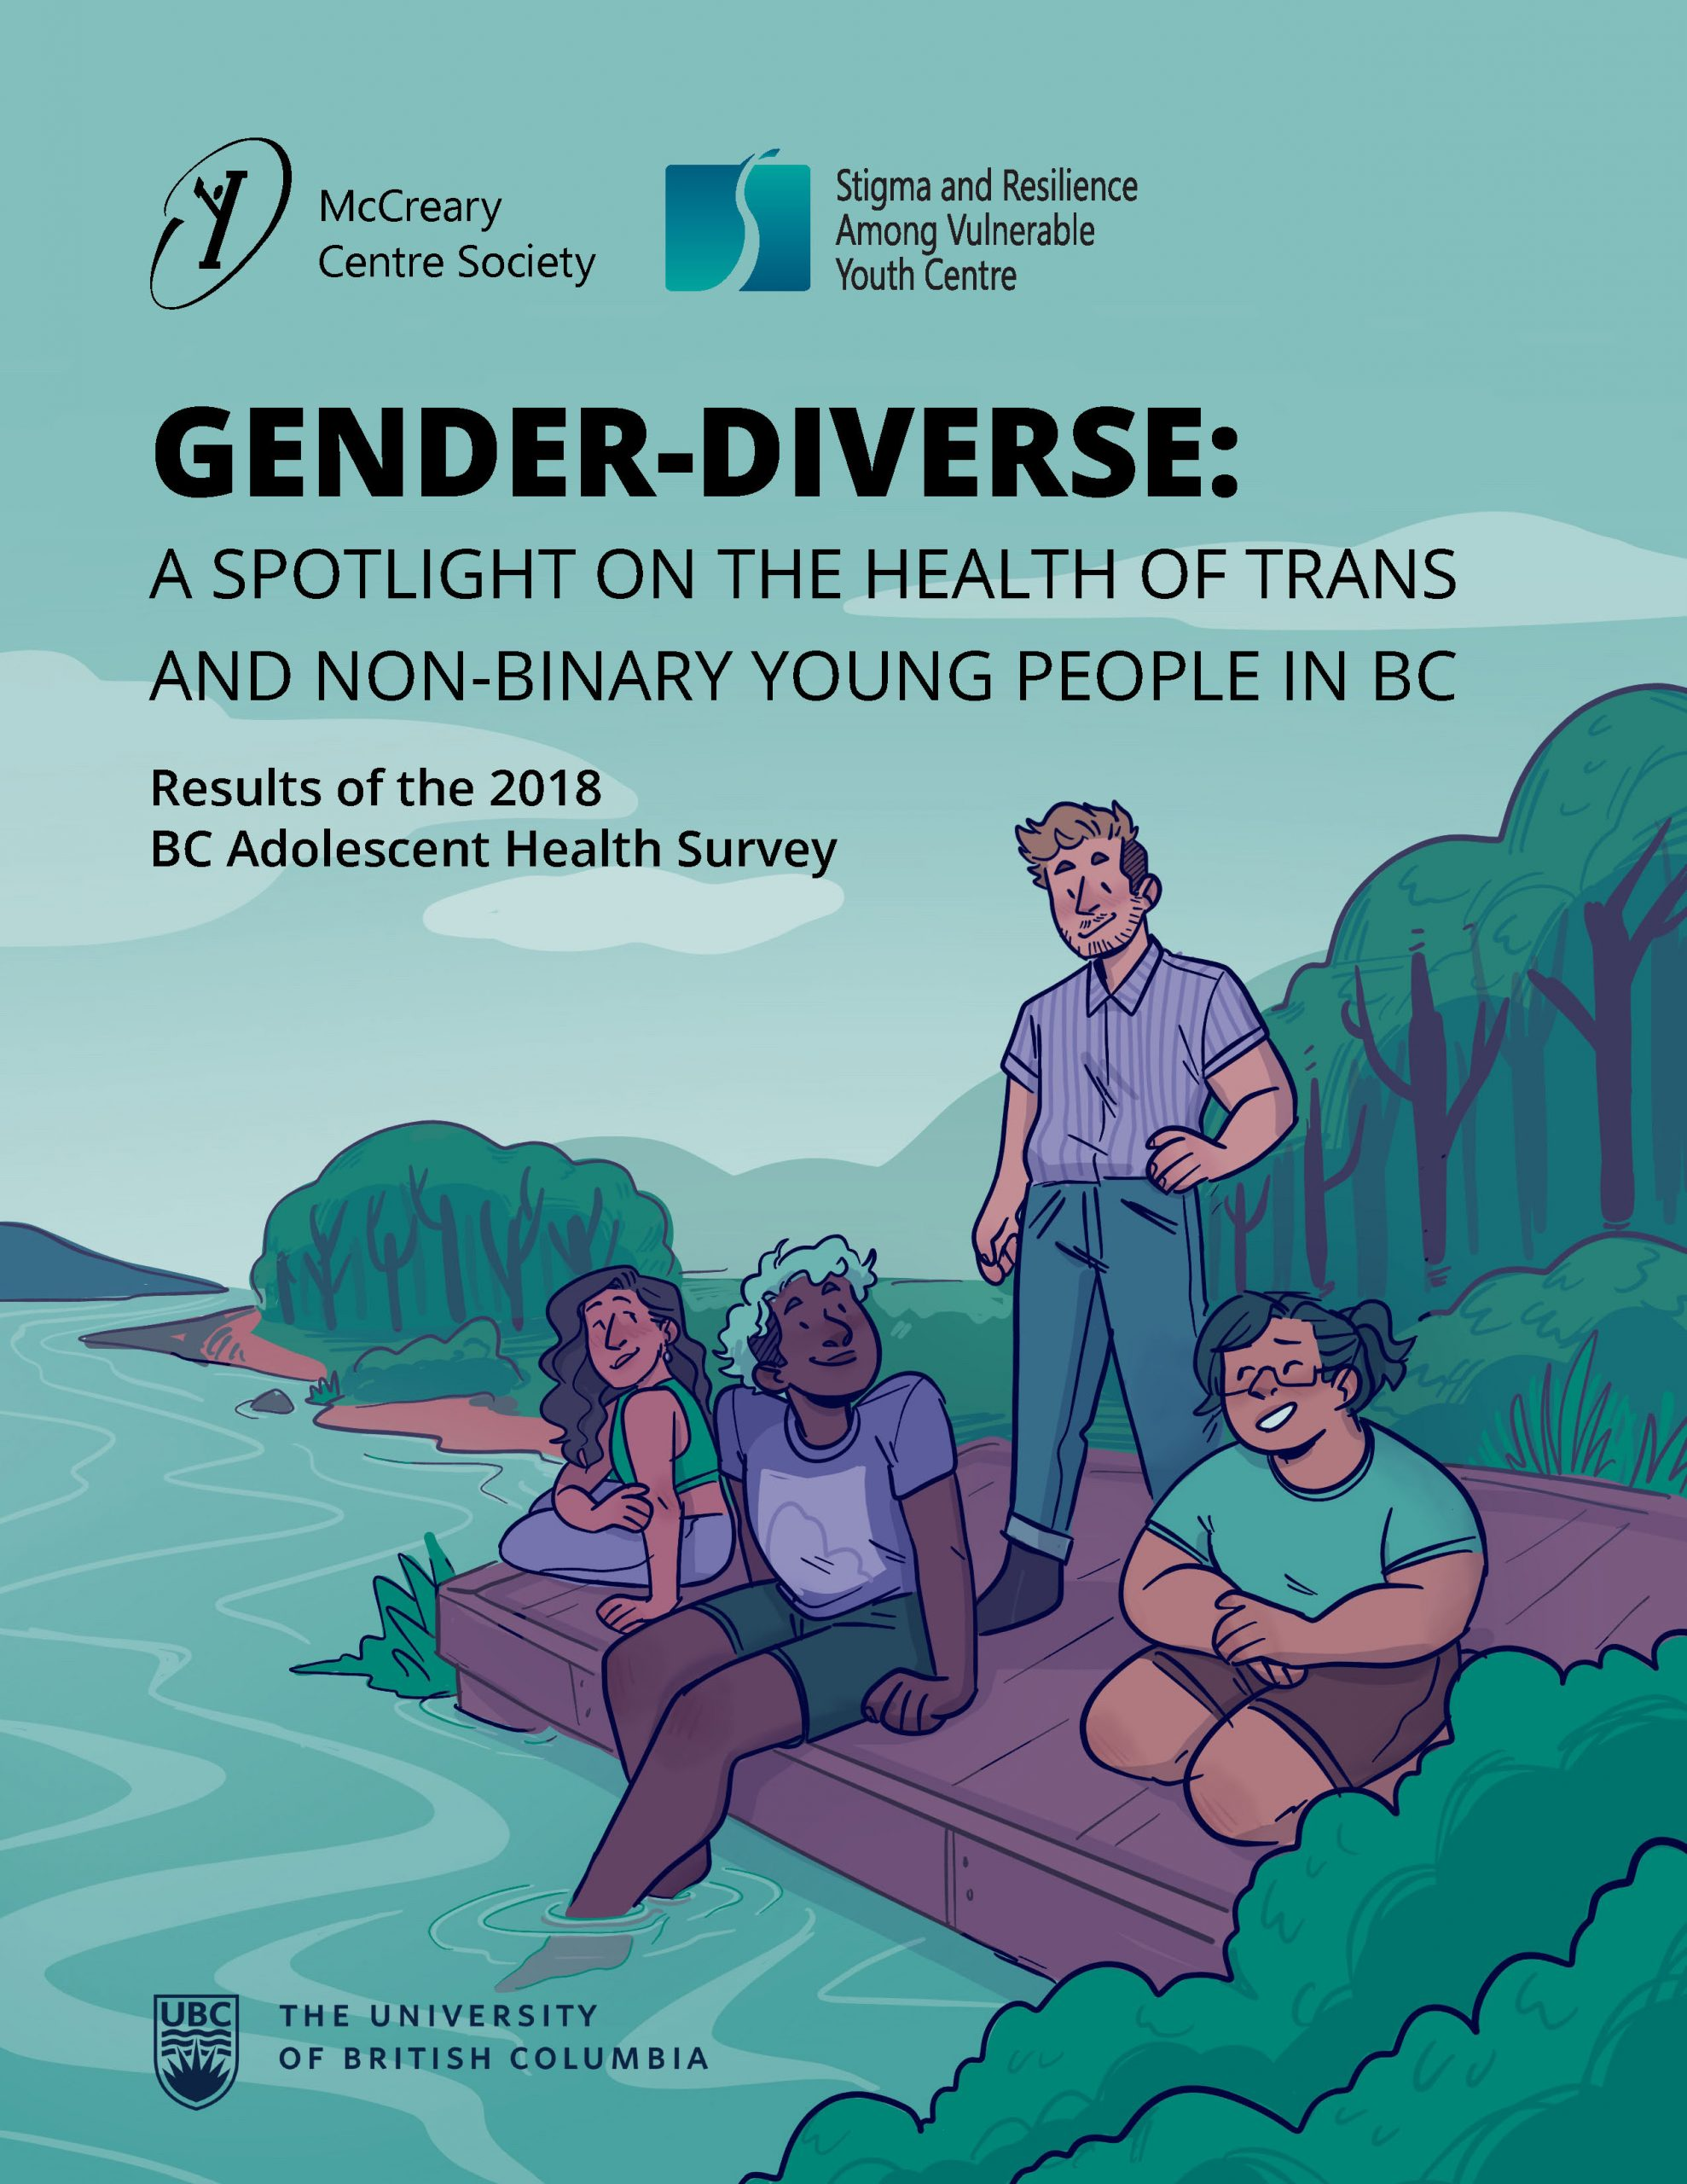 Image of the report cover page features an illustration of four gender-diverse youth sitting on a beach and smiling.